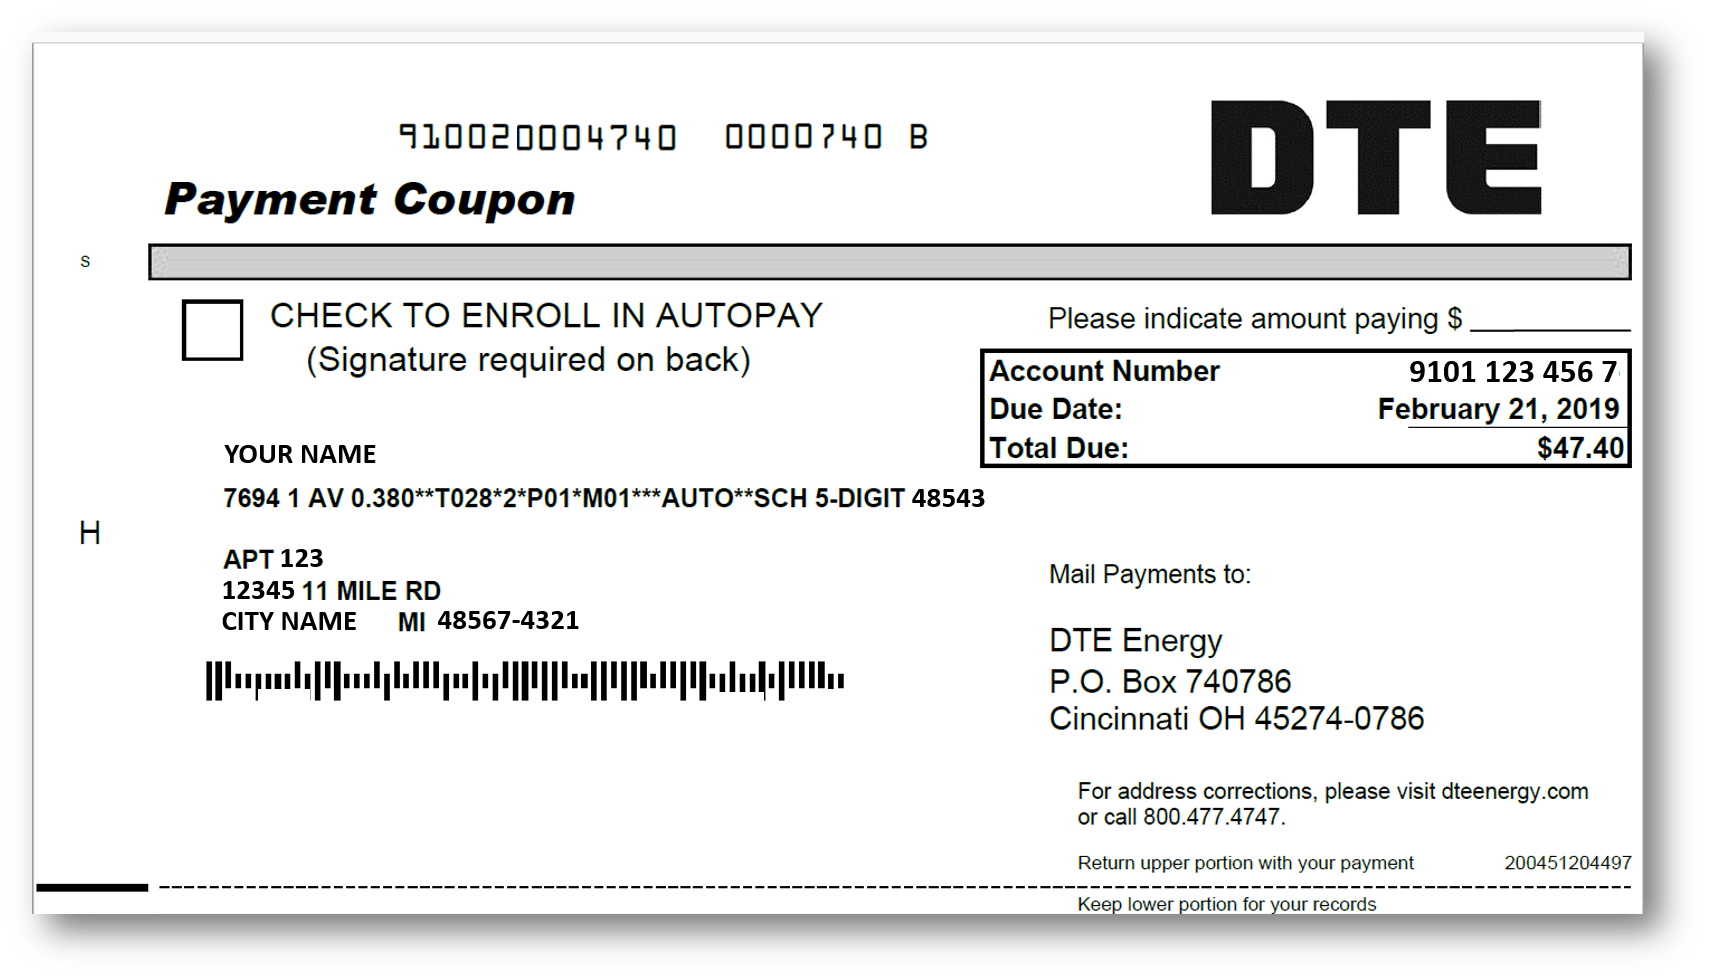 Dte energy customer assistance days - Electricity bill highcommon mistakes might making ...